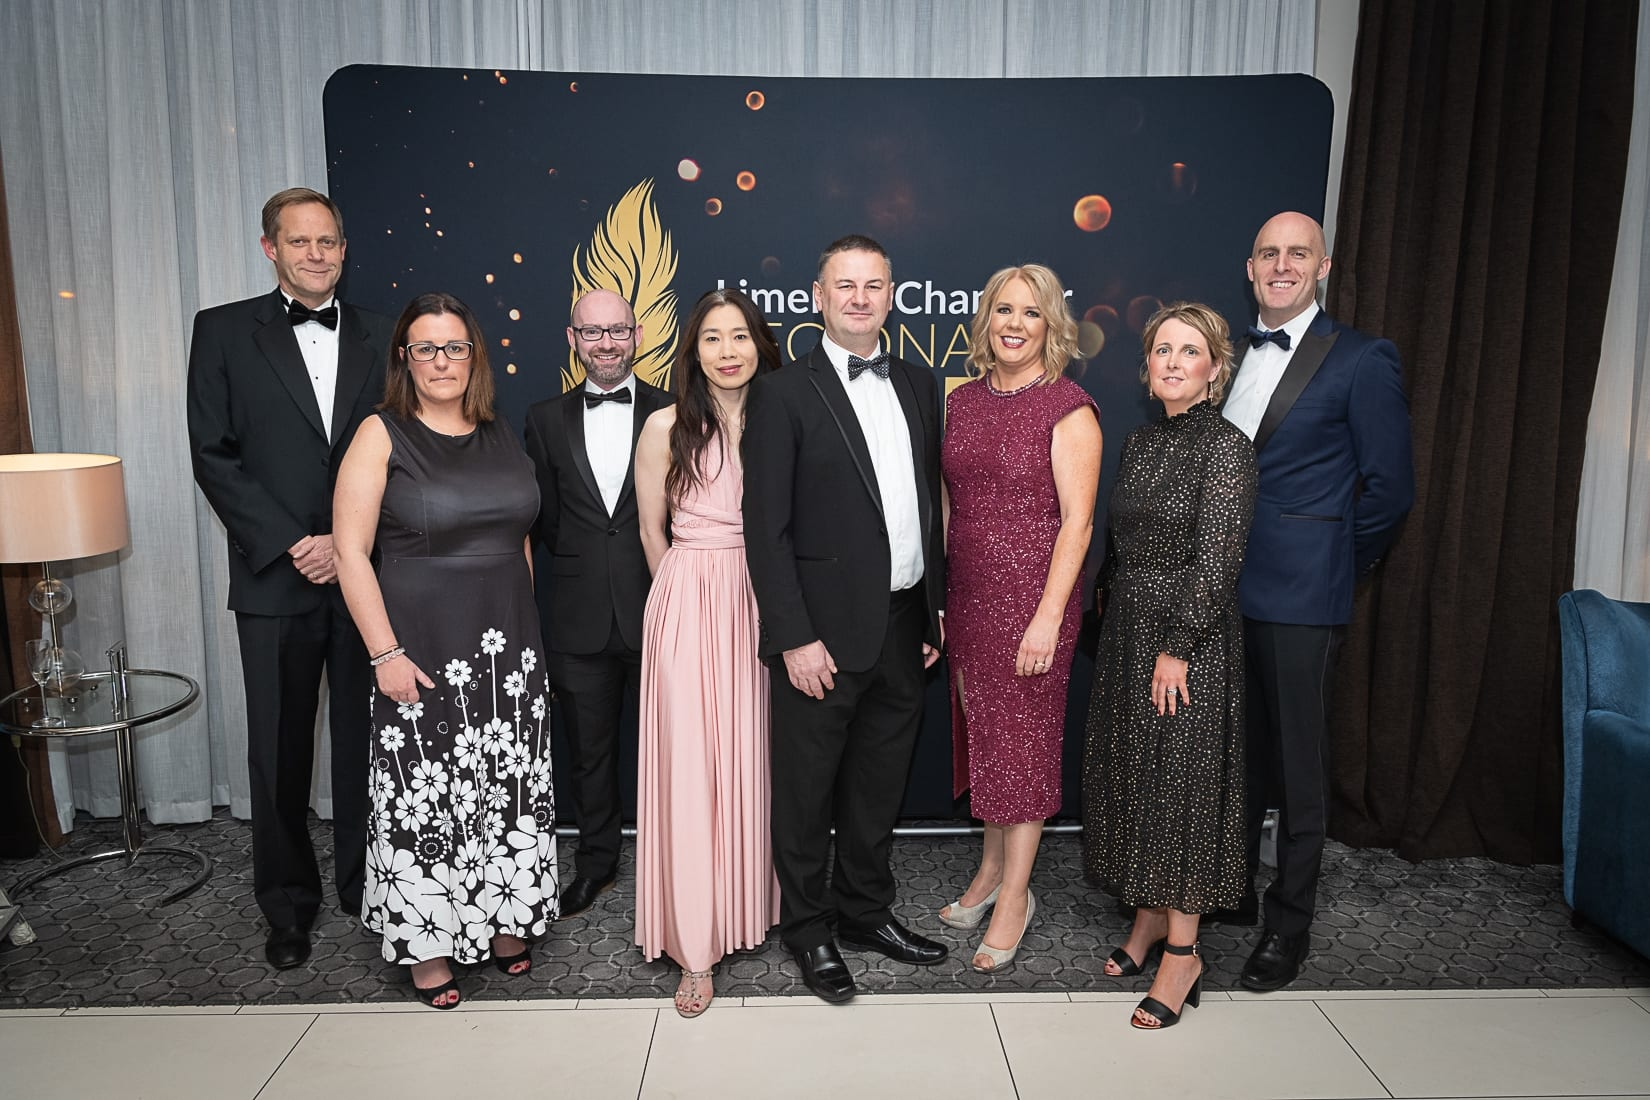 No repro fee-Limerick Chamber President's Dinner and Limerick Chamber Regional Business Awards 2019 which was held in the Strand Hotel on Friday 15th November - From Left to Right: Johnathan Sellors, Claire Walsh, Michael Dullard,  Dr. Uimay Ryan, Brendan Quinn, Lavinia Ryan, Karen Yelverton, Arron Keogh all from VHI Photo credit Shauna Kennedy